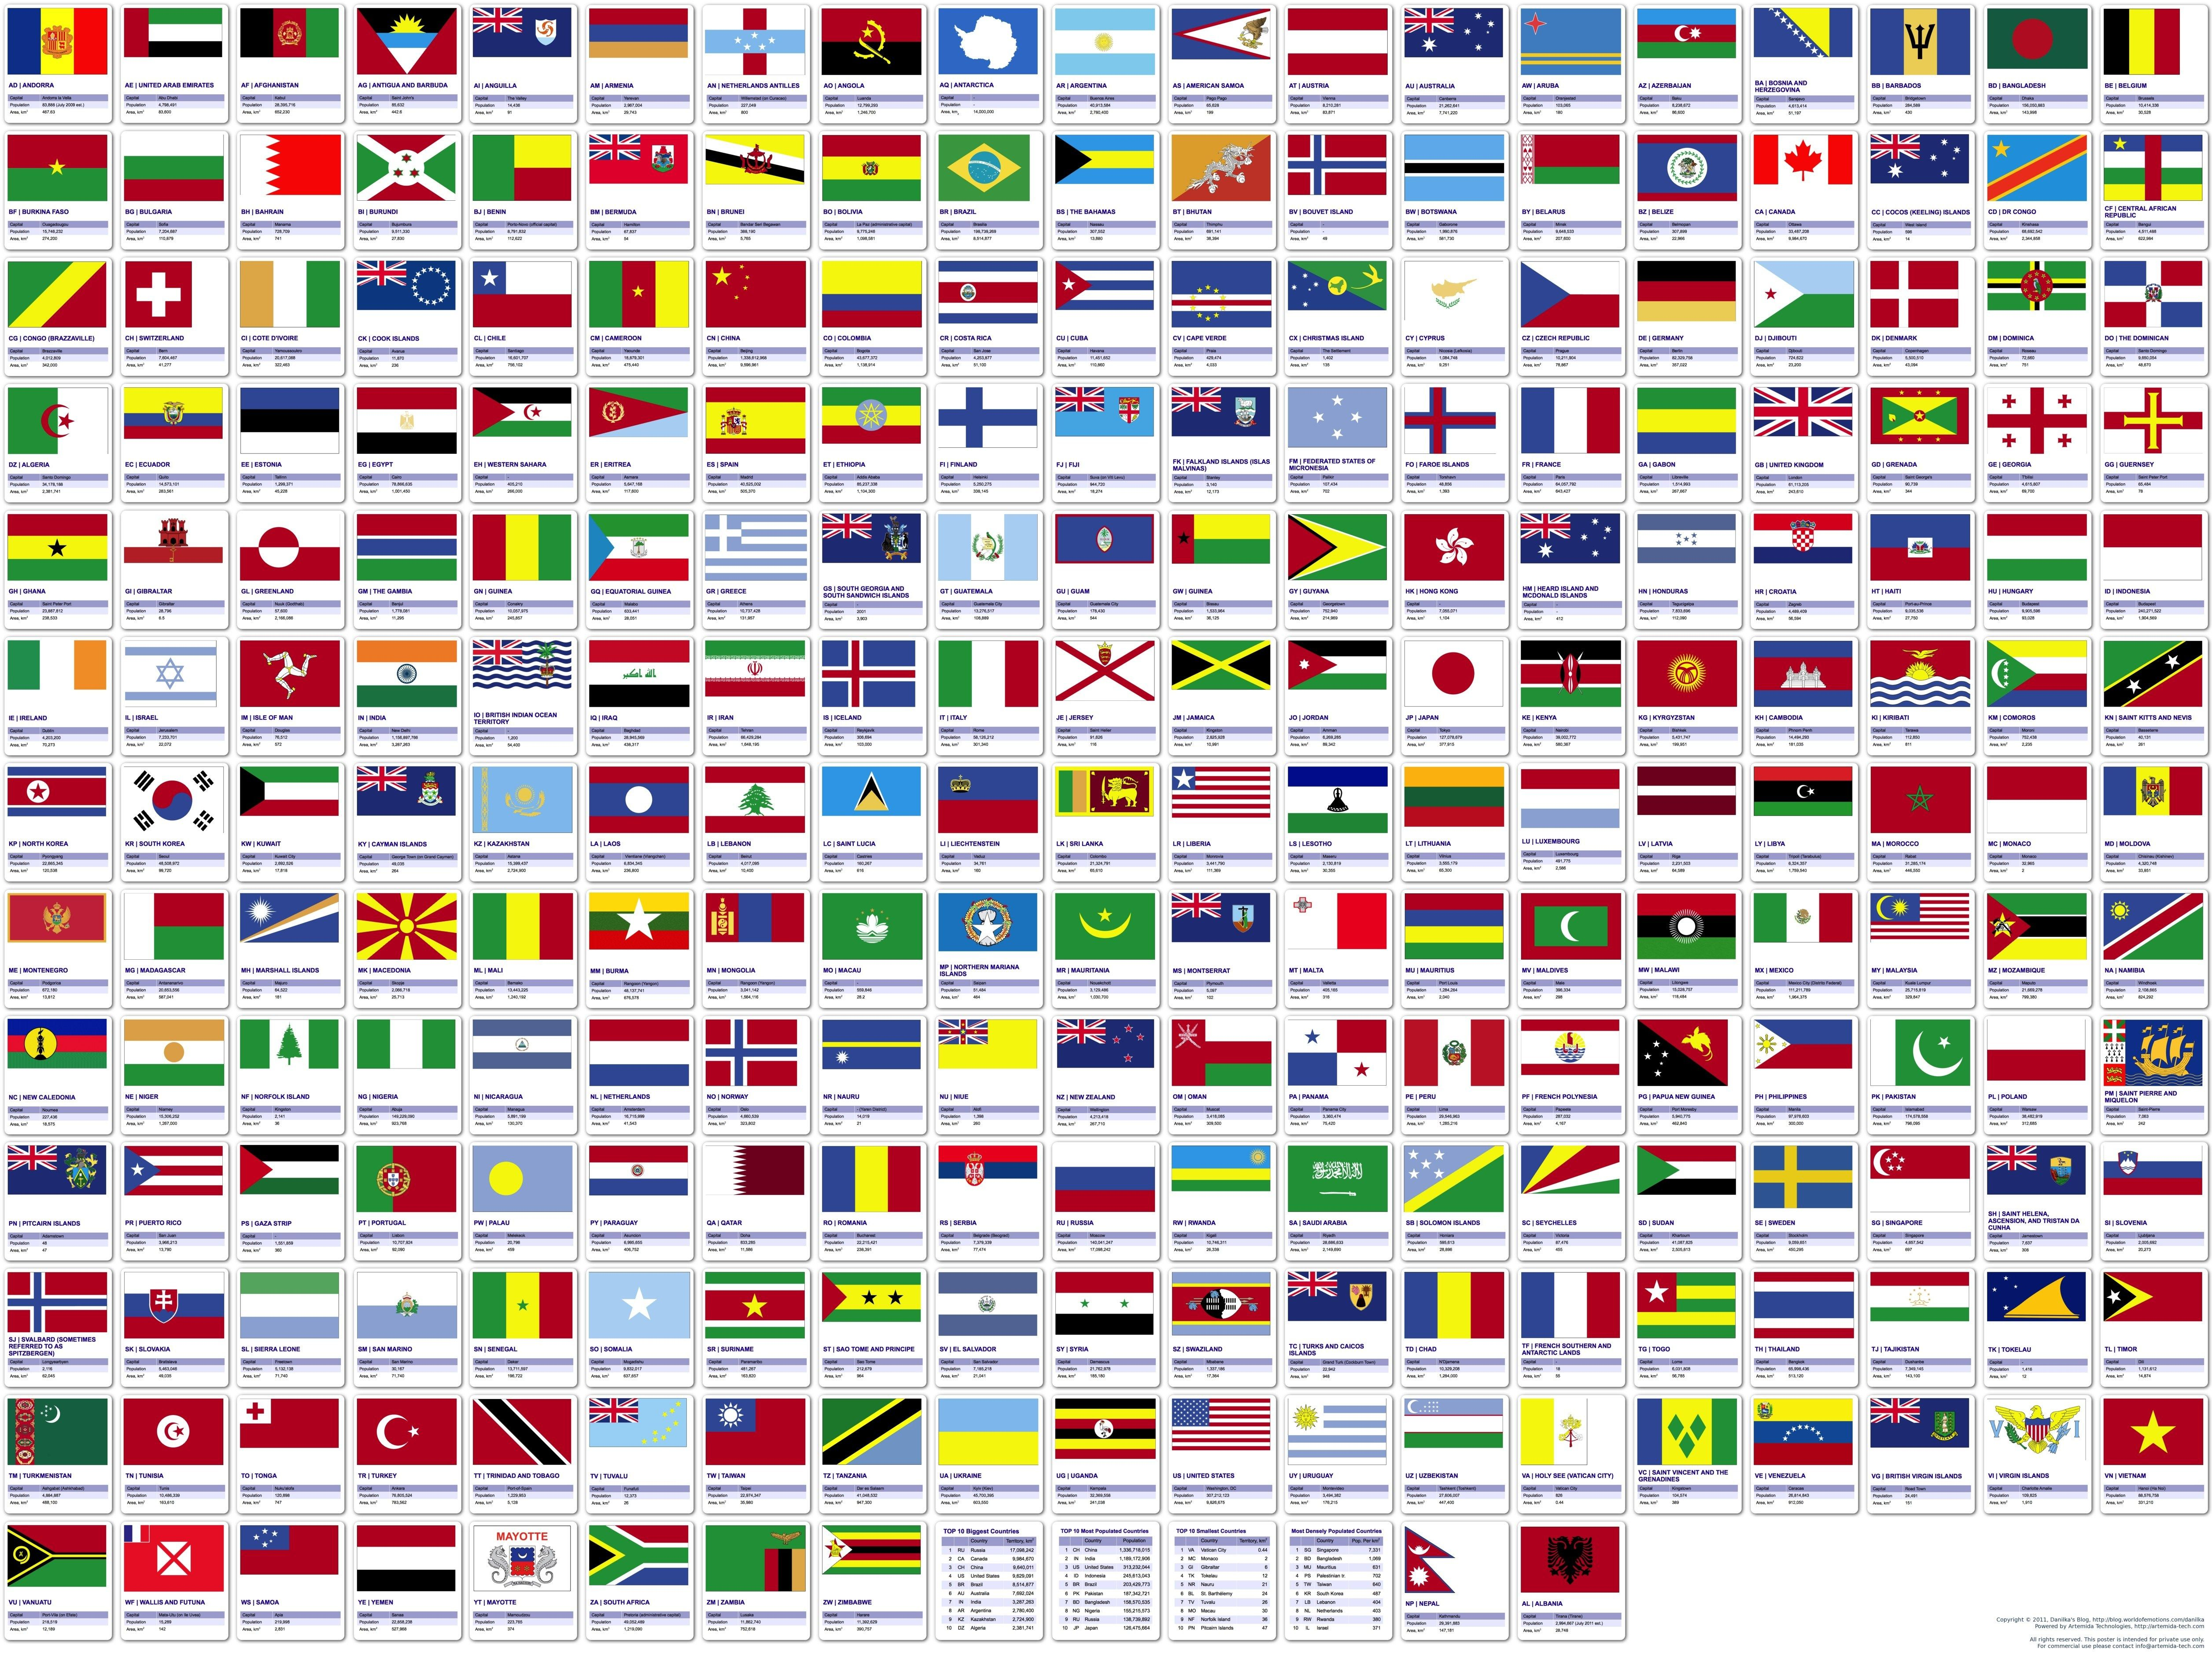 Come Out And Rep Your Country At This Year S Festival Of Flags In Dun Laoghaire Republic Of Ireland World Flags Printable All Flags World Flags With Names